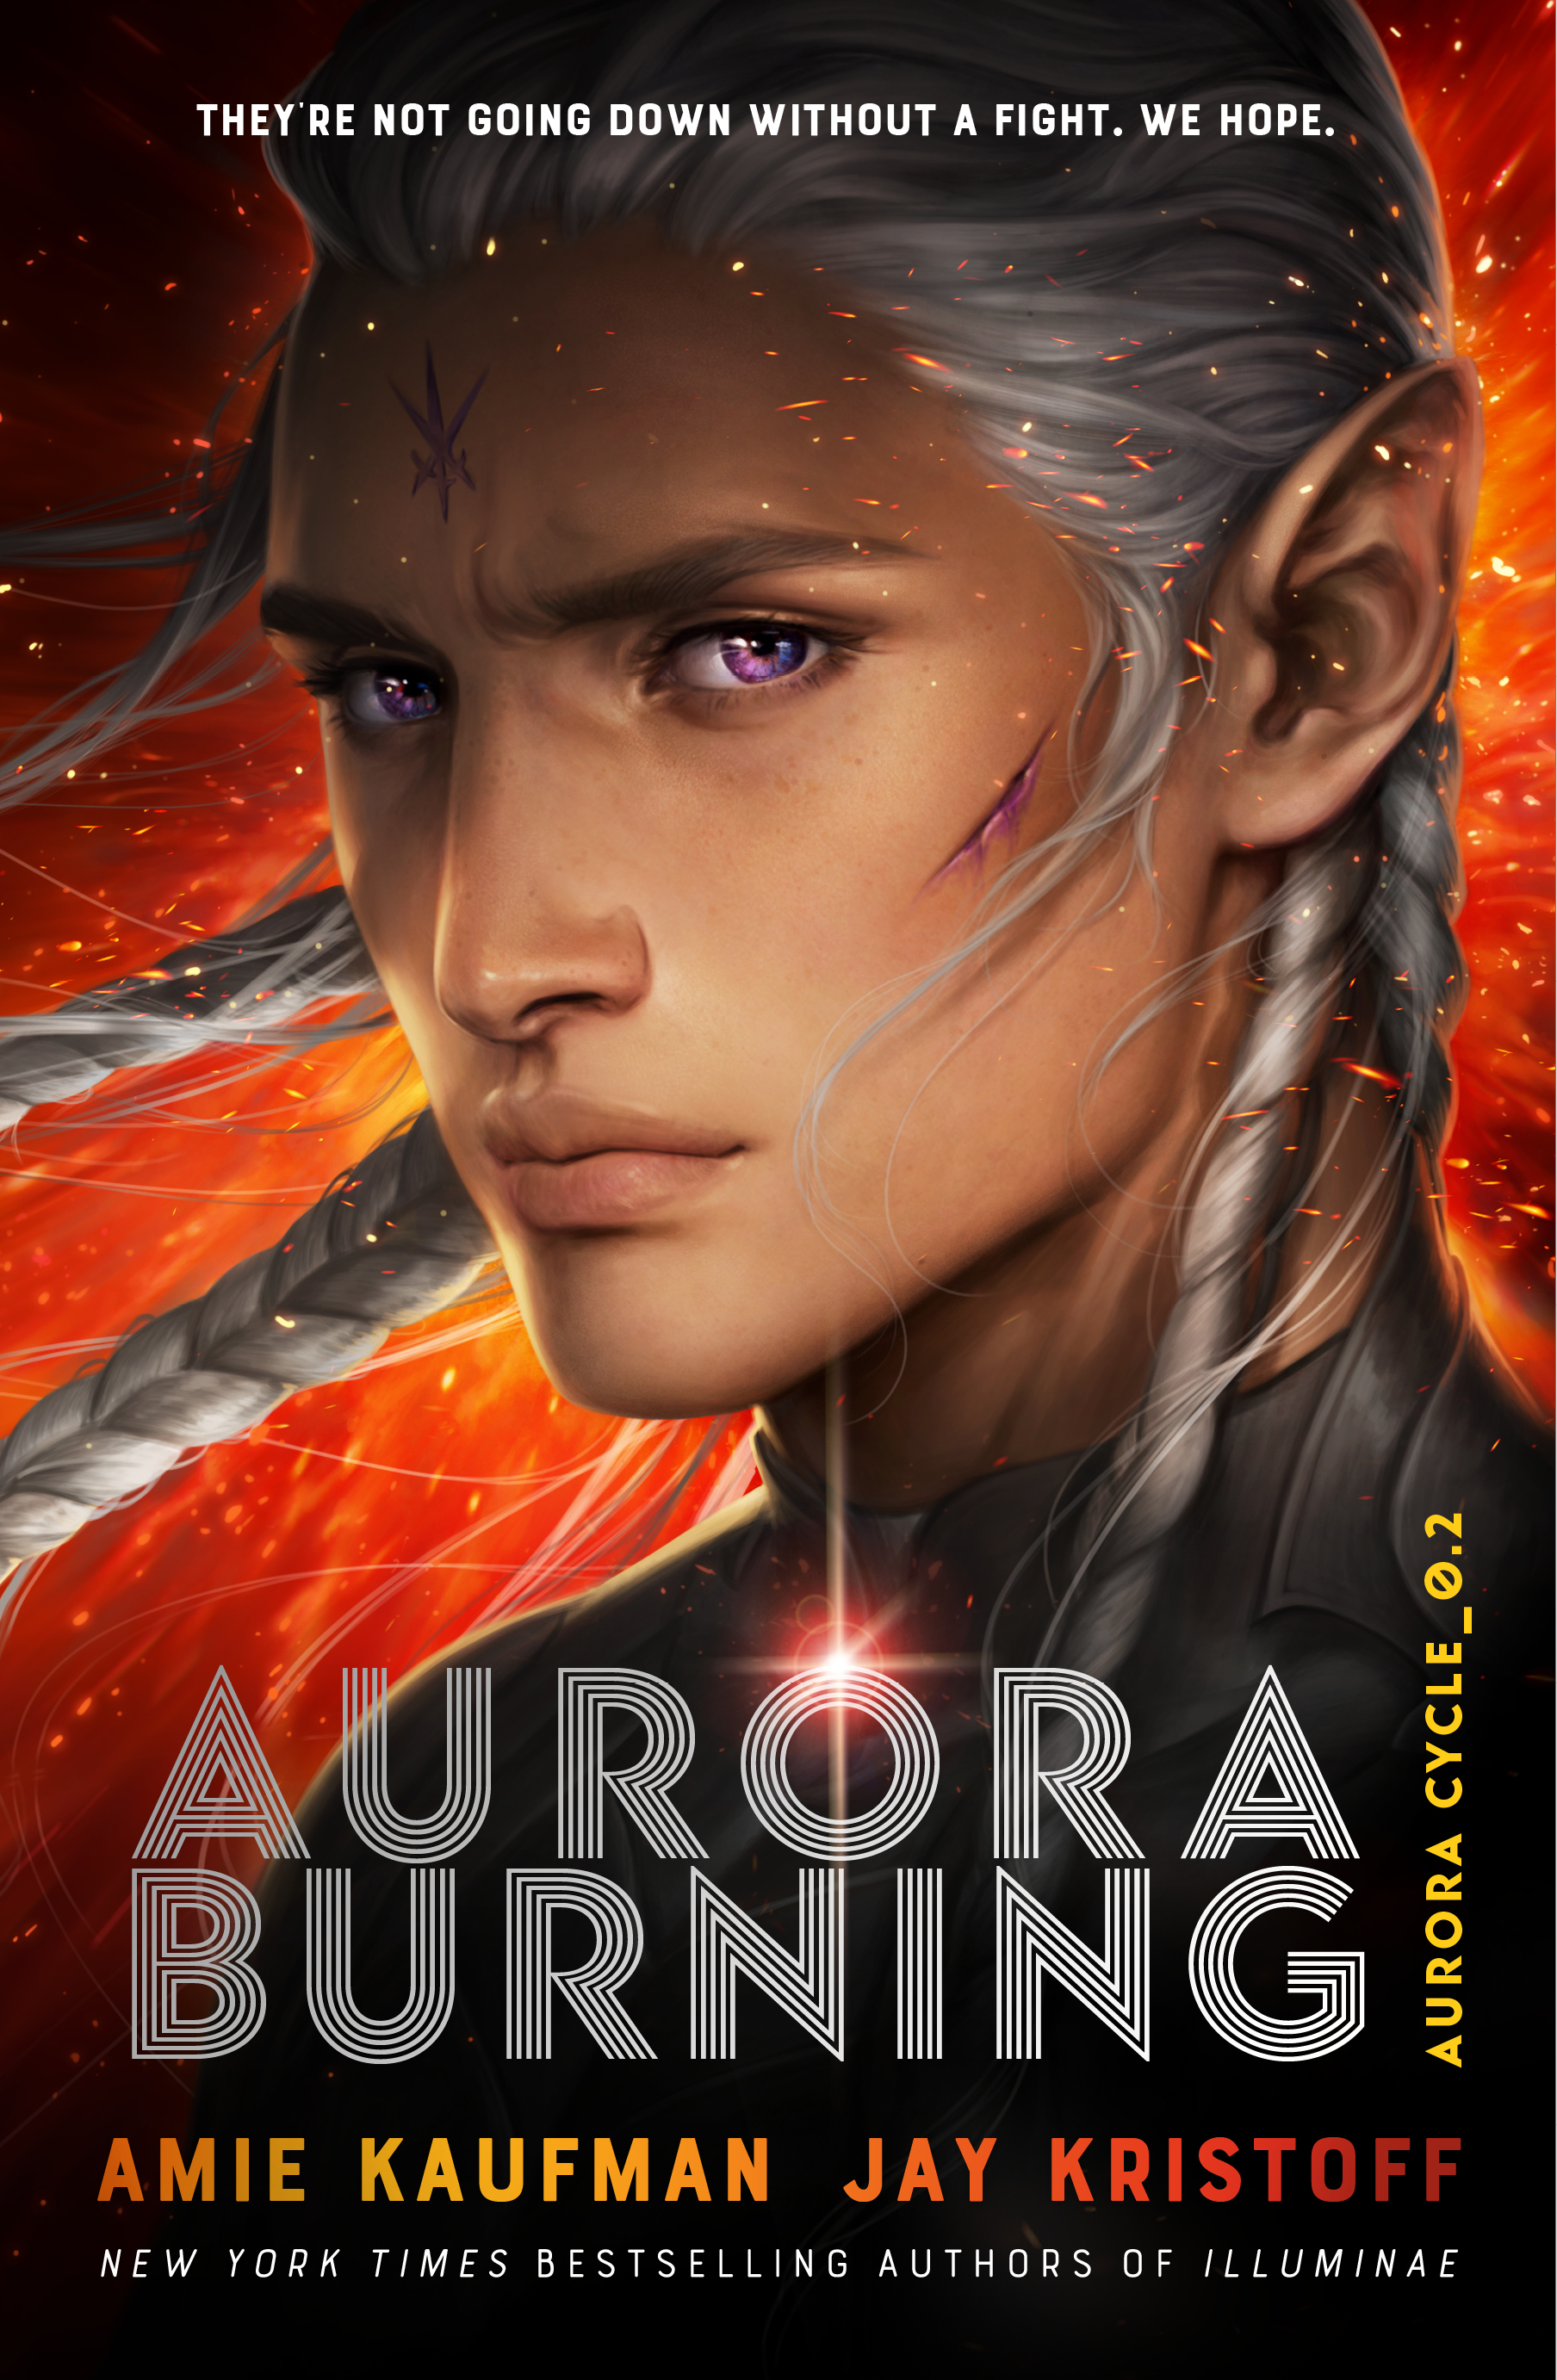 Aurora Burning (The Aurora Cycle #2)